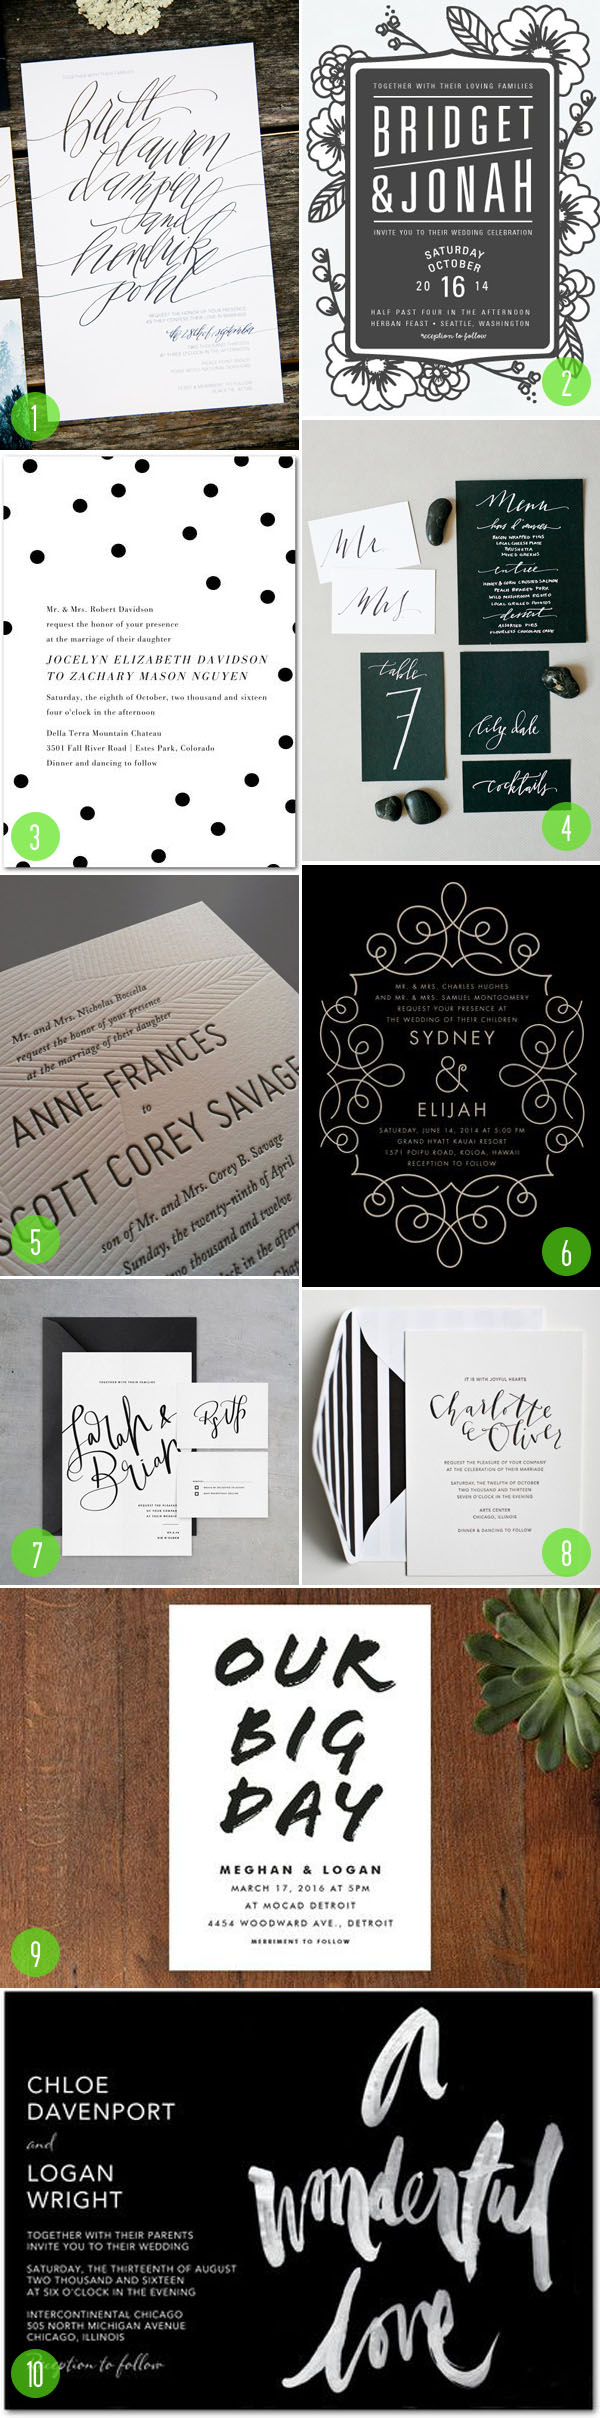 top 10: black and white invitations 2